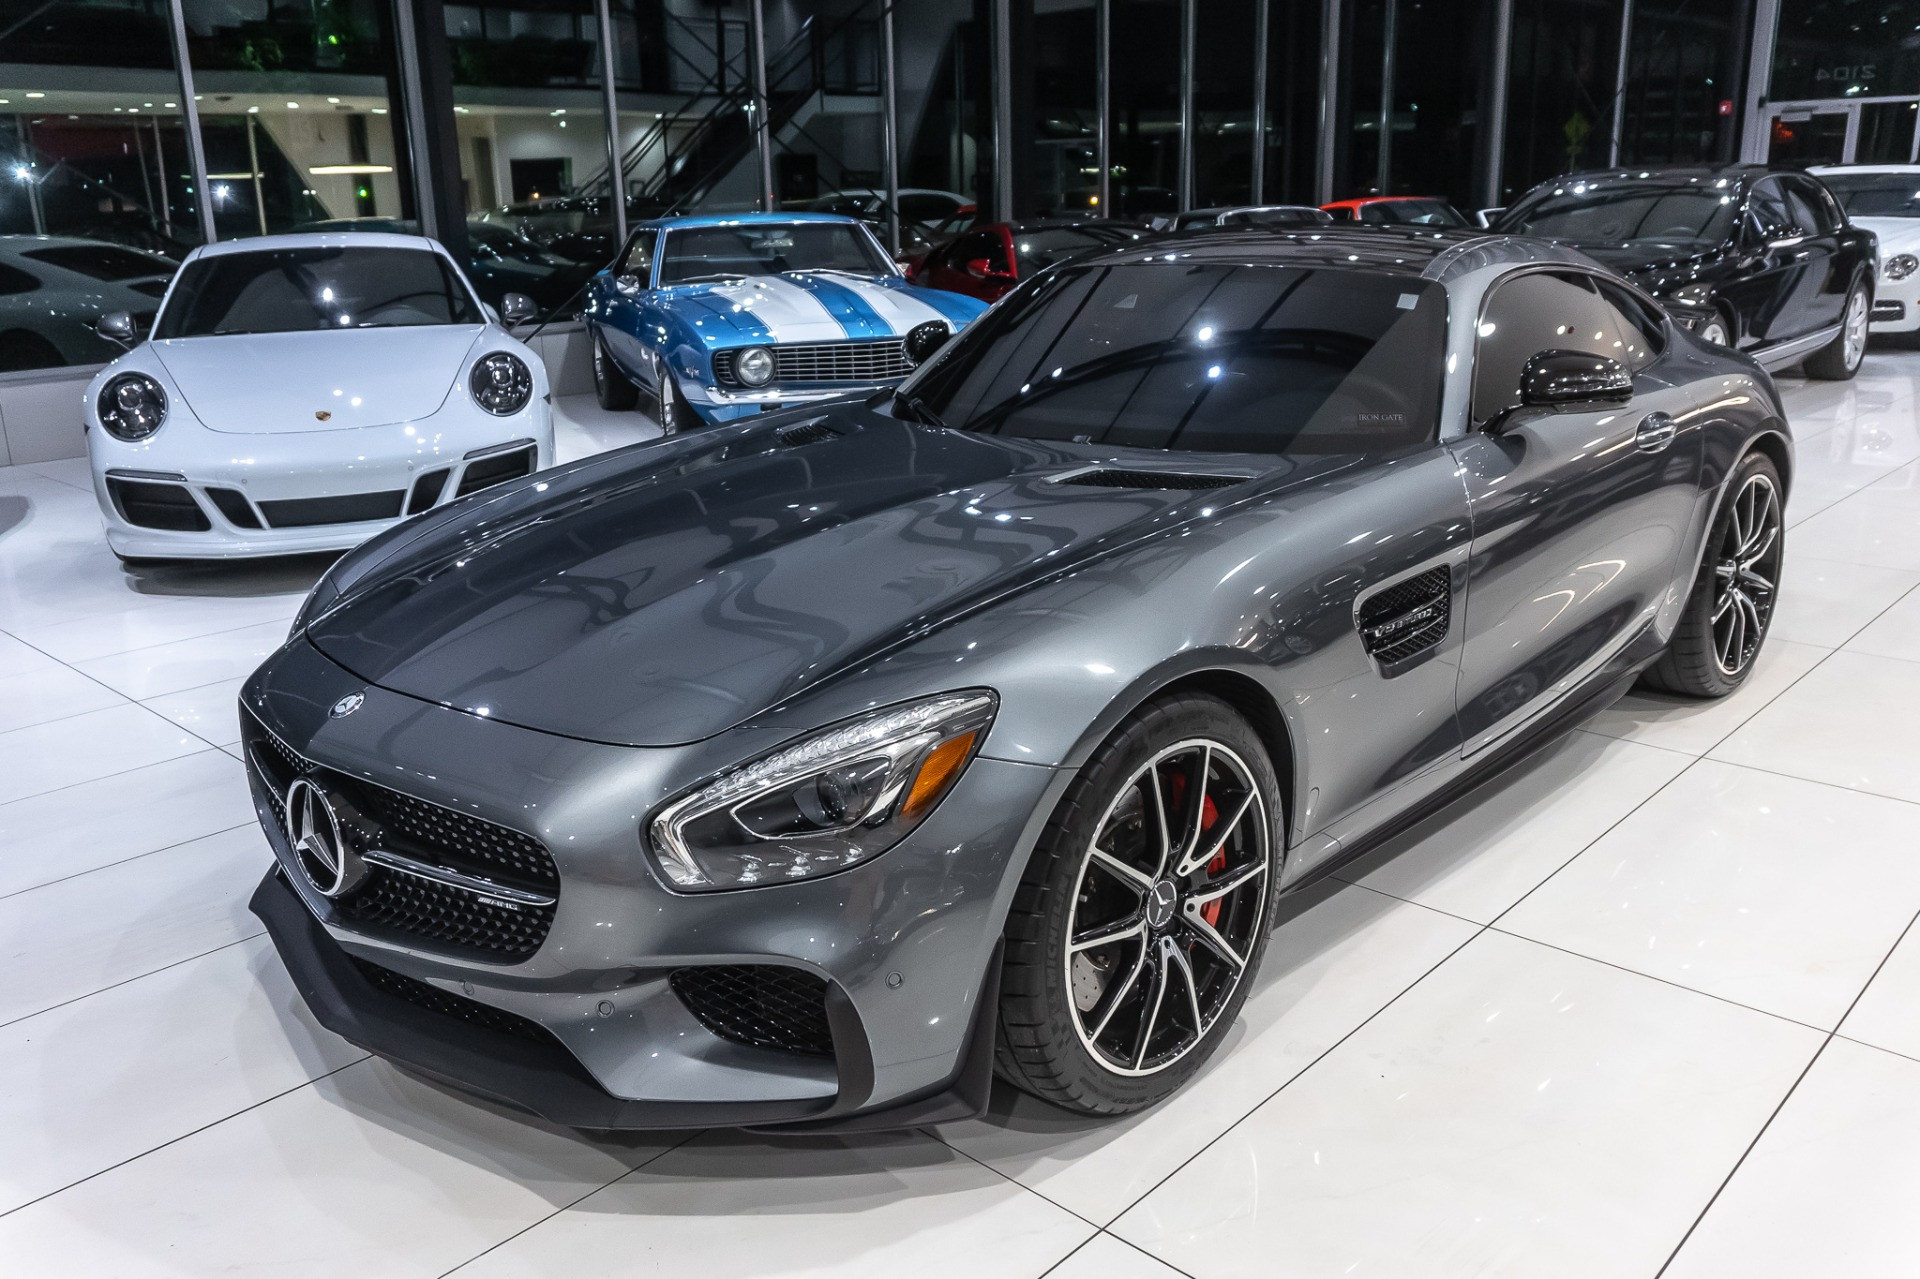 Used 2016 Mercedes-Benz AMG GTS Coupe EDITION 1! For Sale ...